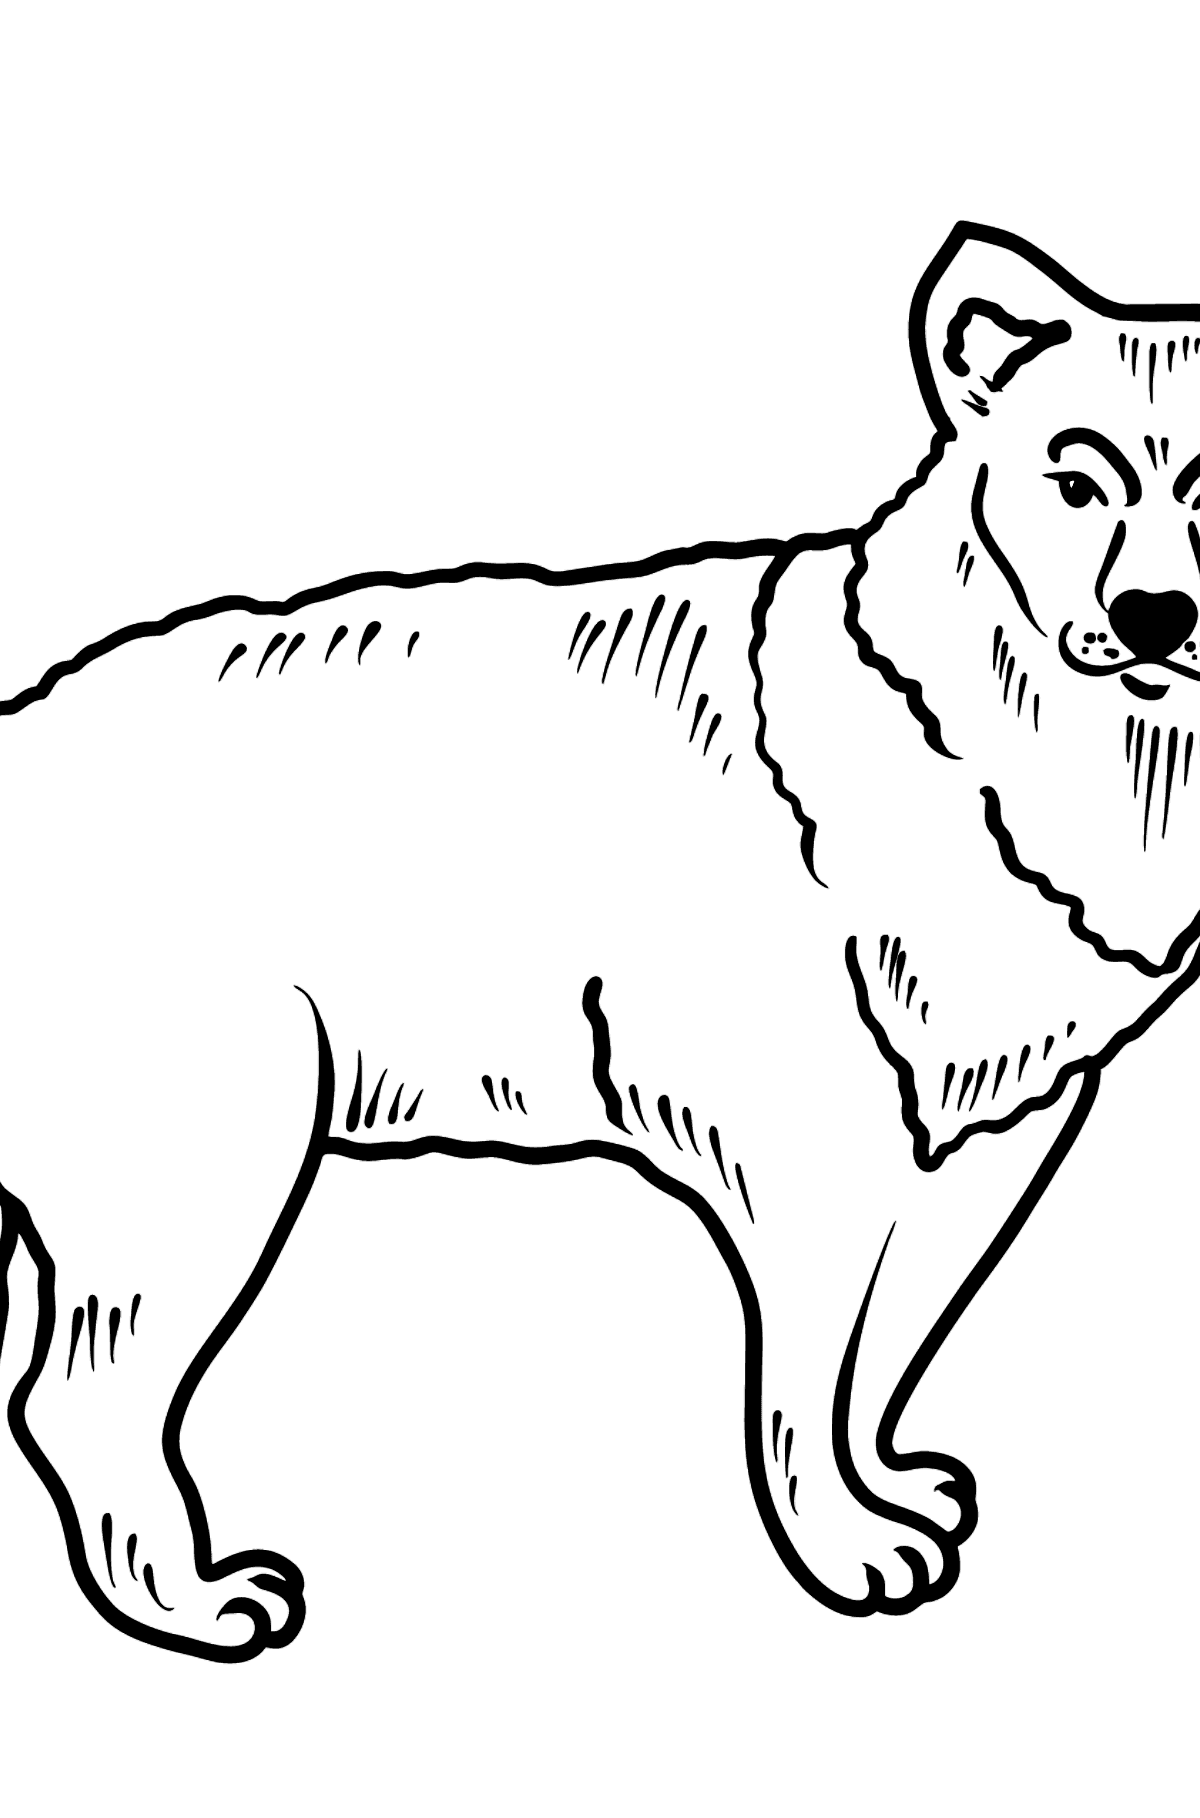 Coyote coloring page - Coloring Pages for Kids